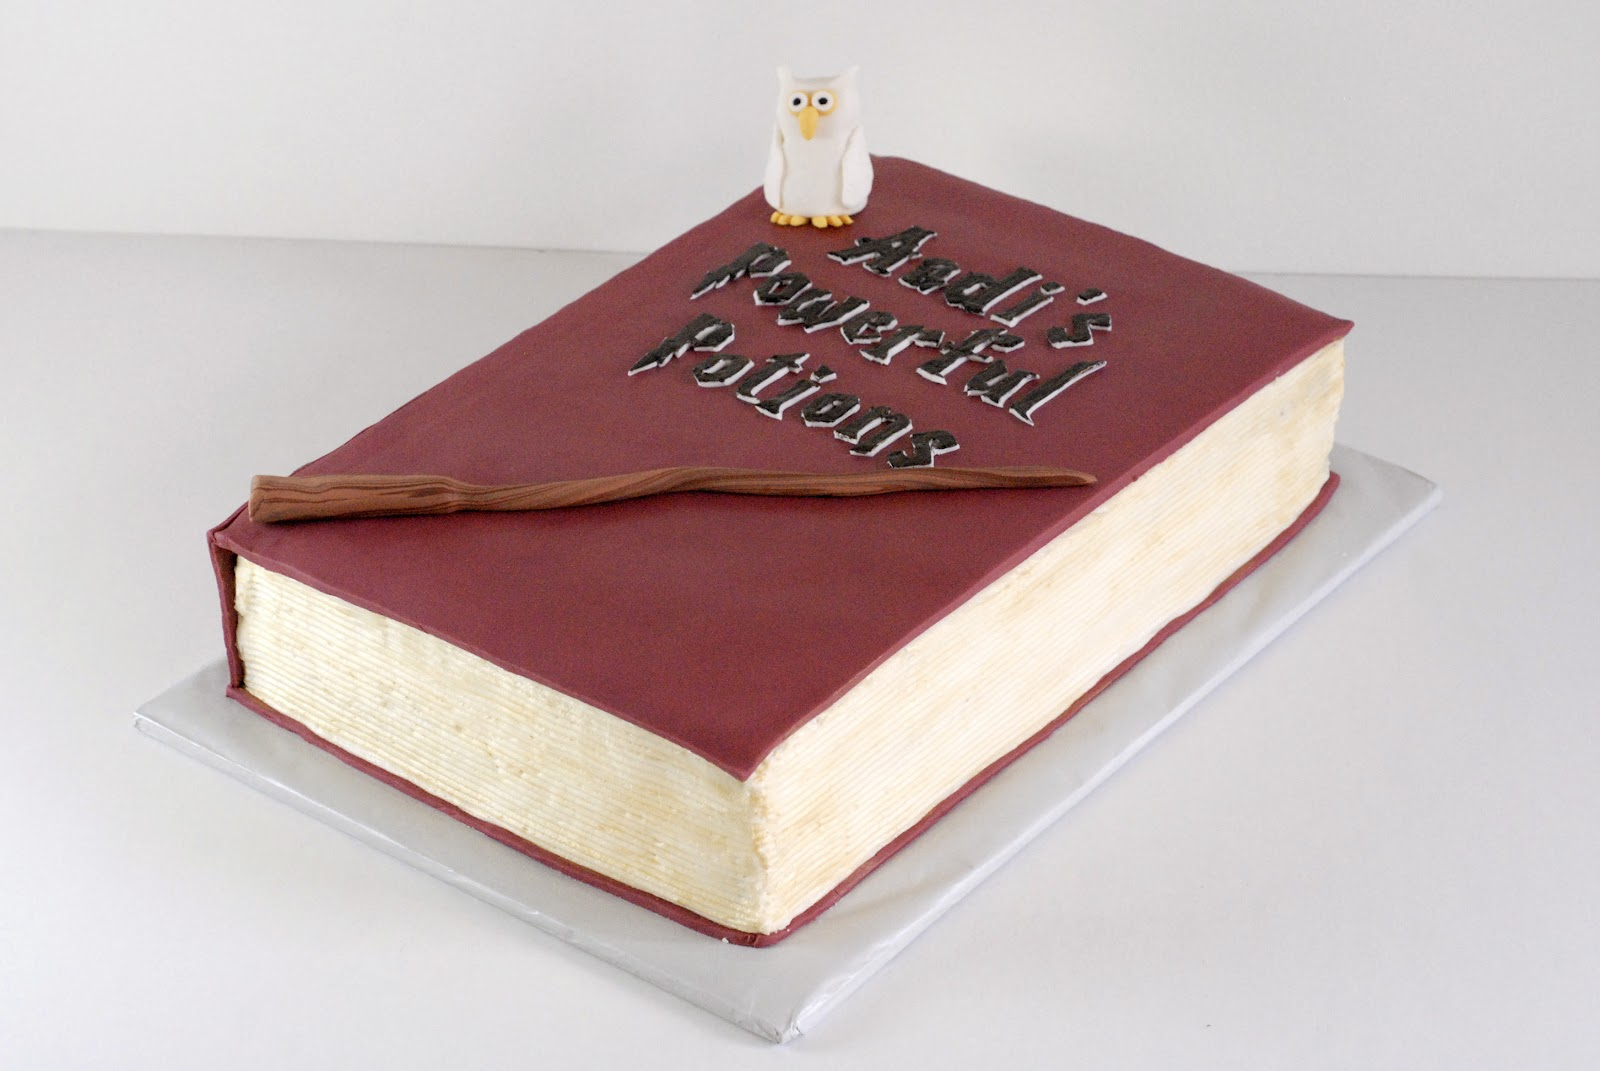 How To Make A Book Cake Without Fondant